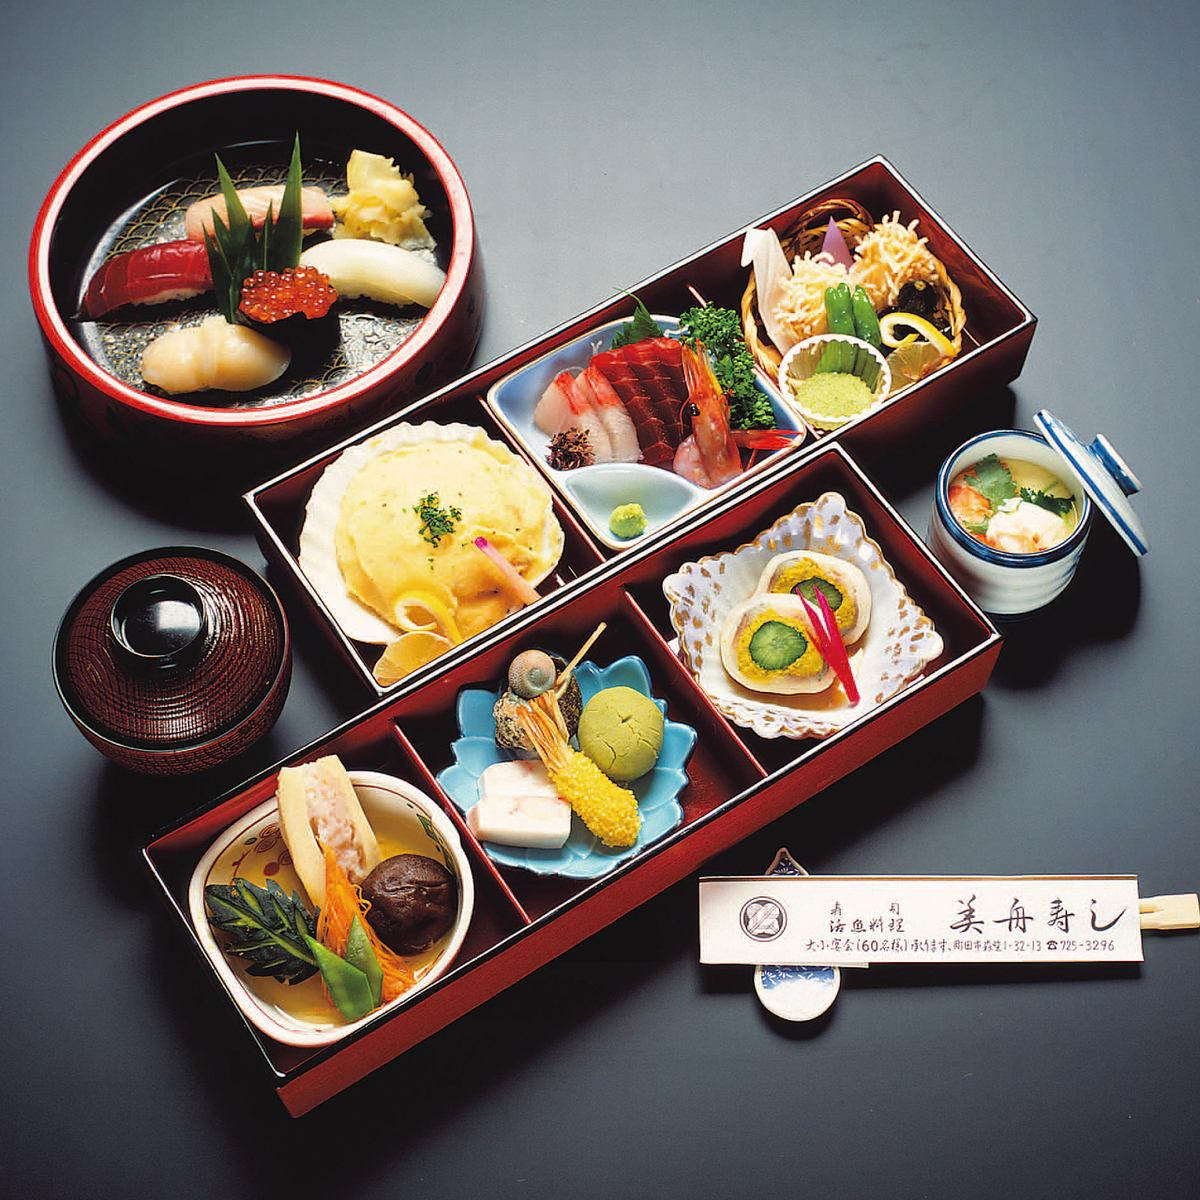 Catering catering service.No washing needs · Free cooking.For entertainment, legal affairs, ceremonial occasions and so on.